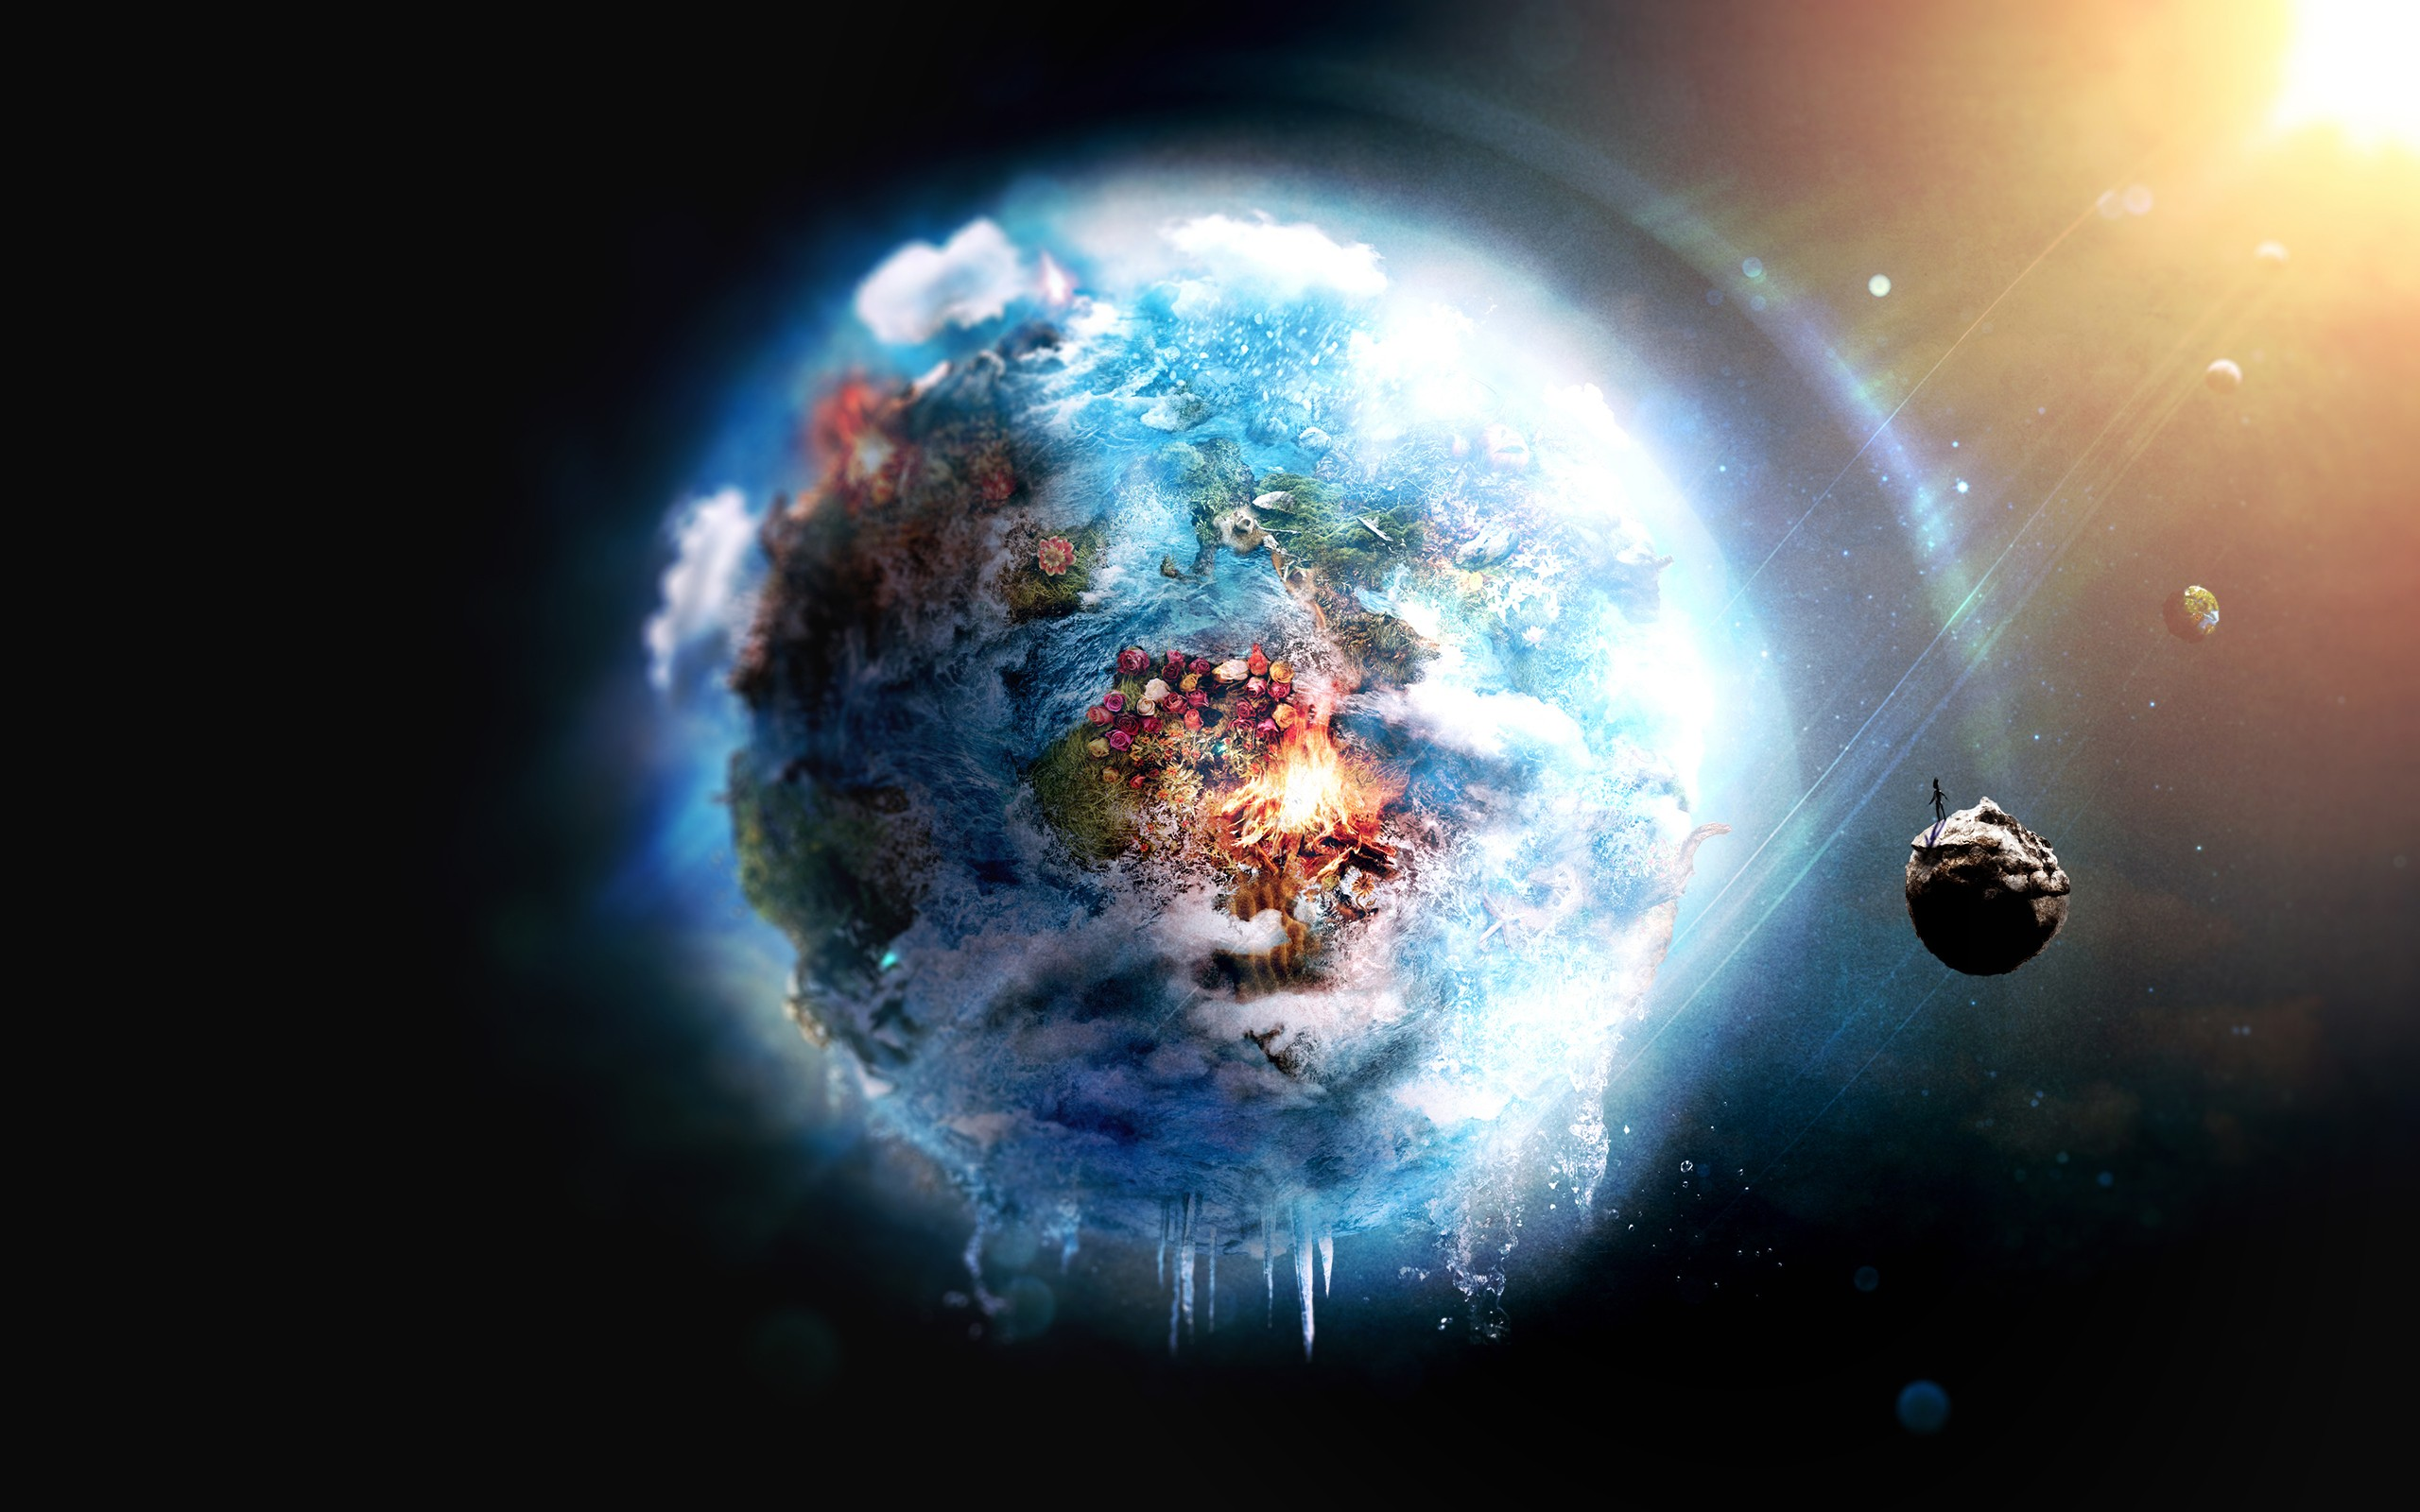 Outer space world futuristic fire earth frozen destruction for Outerspace forum